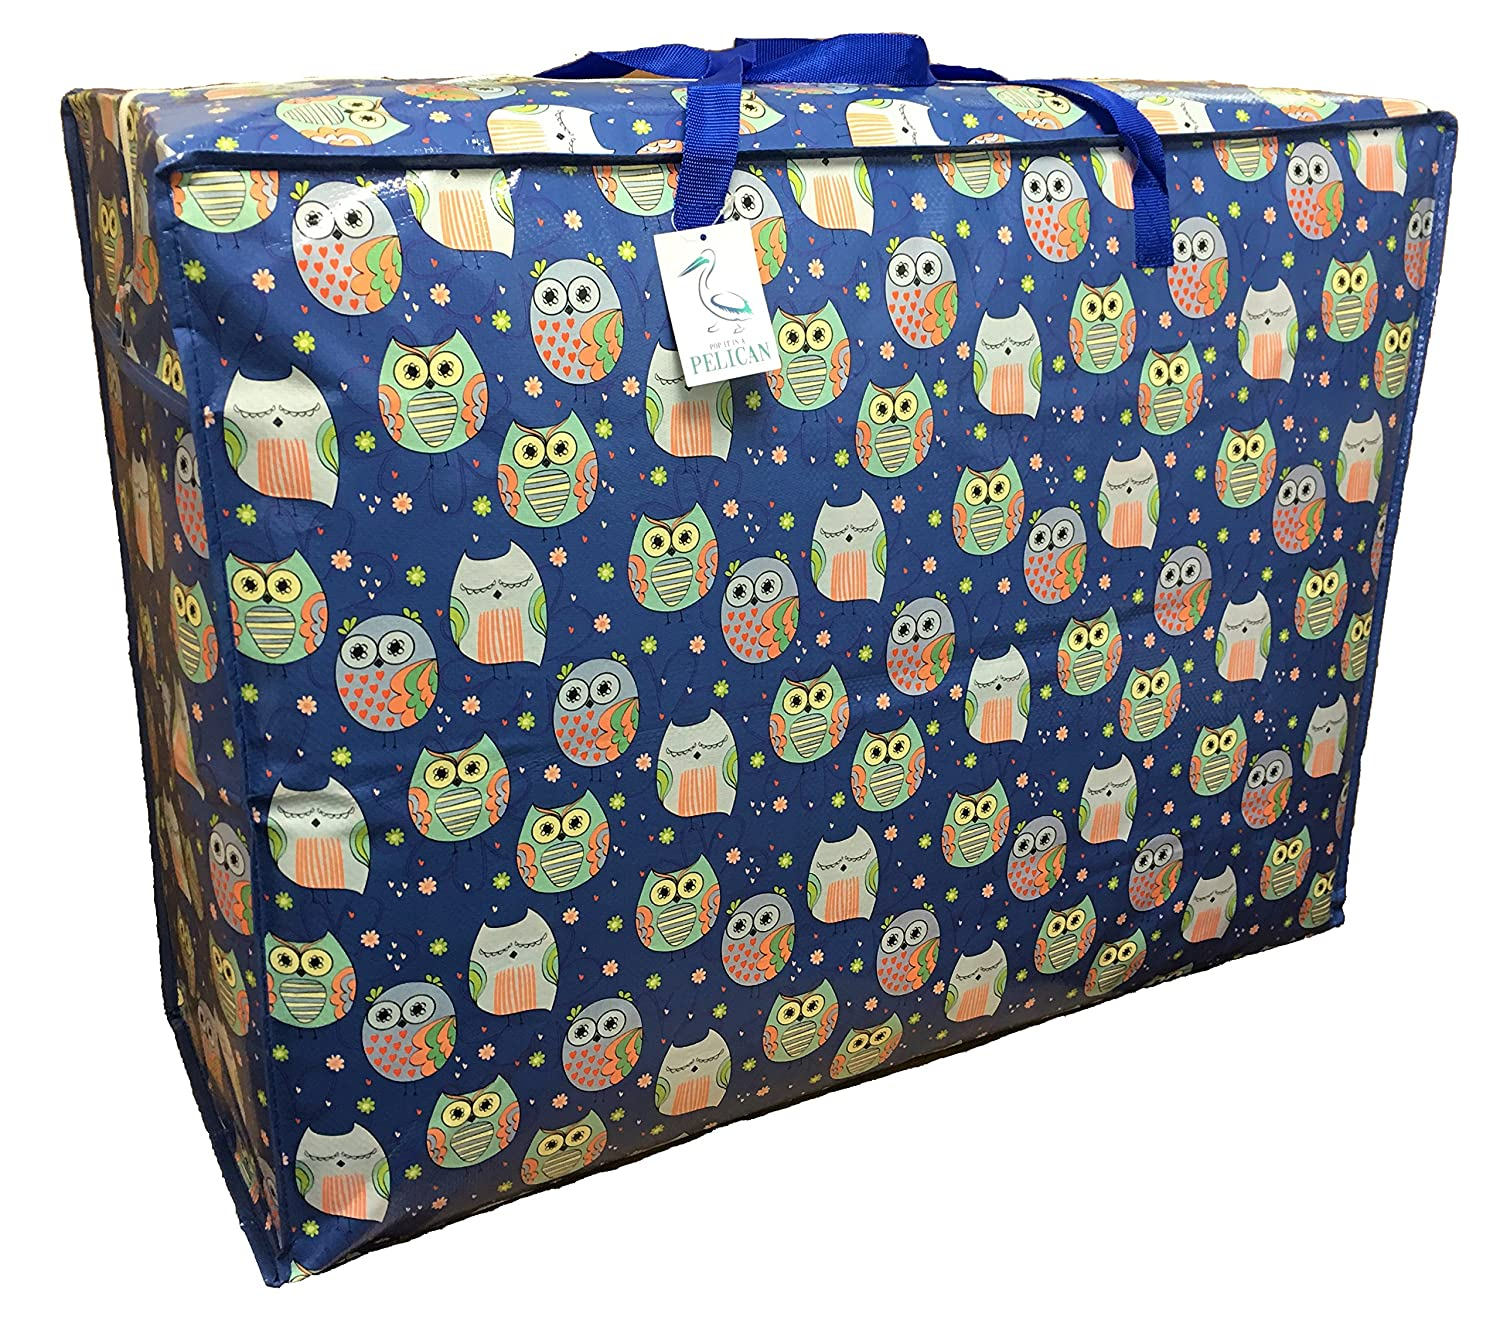 Pelican EXTRA Large 115 litre Storage bag. Blue with sleepy Owls pattern. Strong and durable zipped bag.